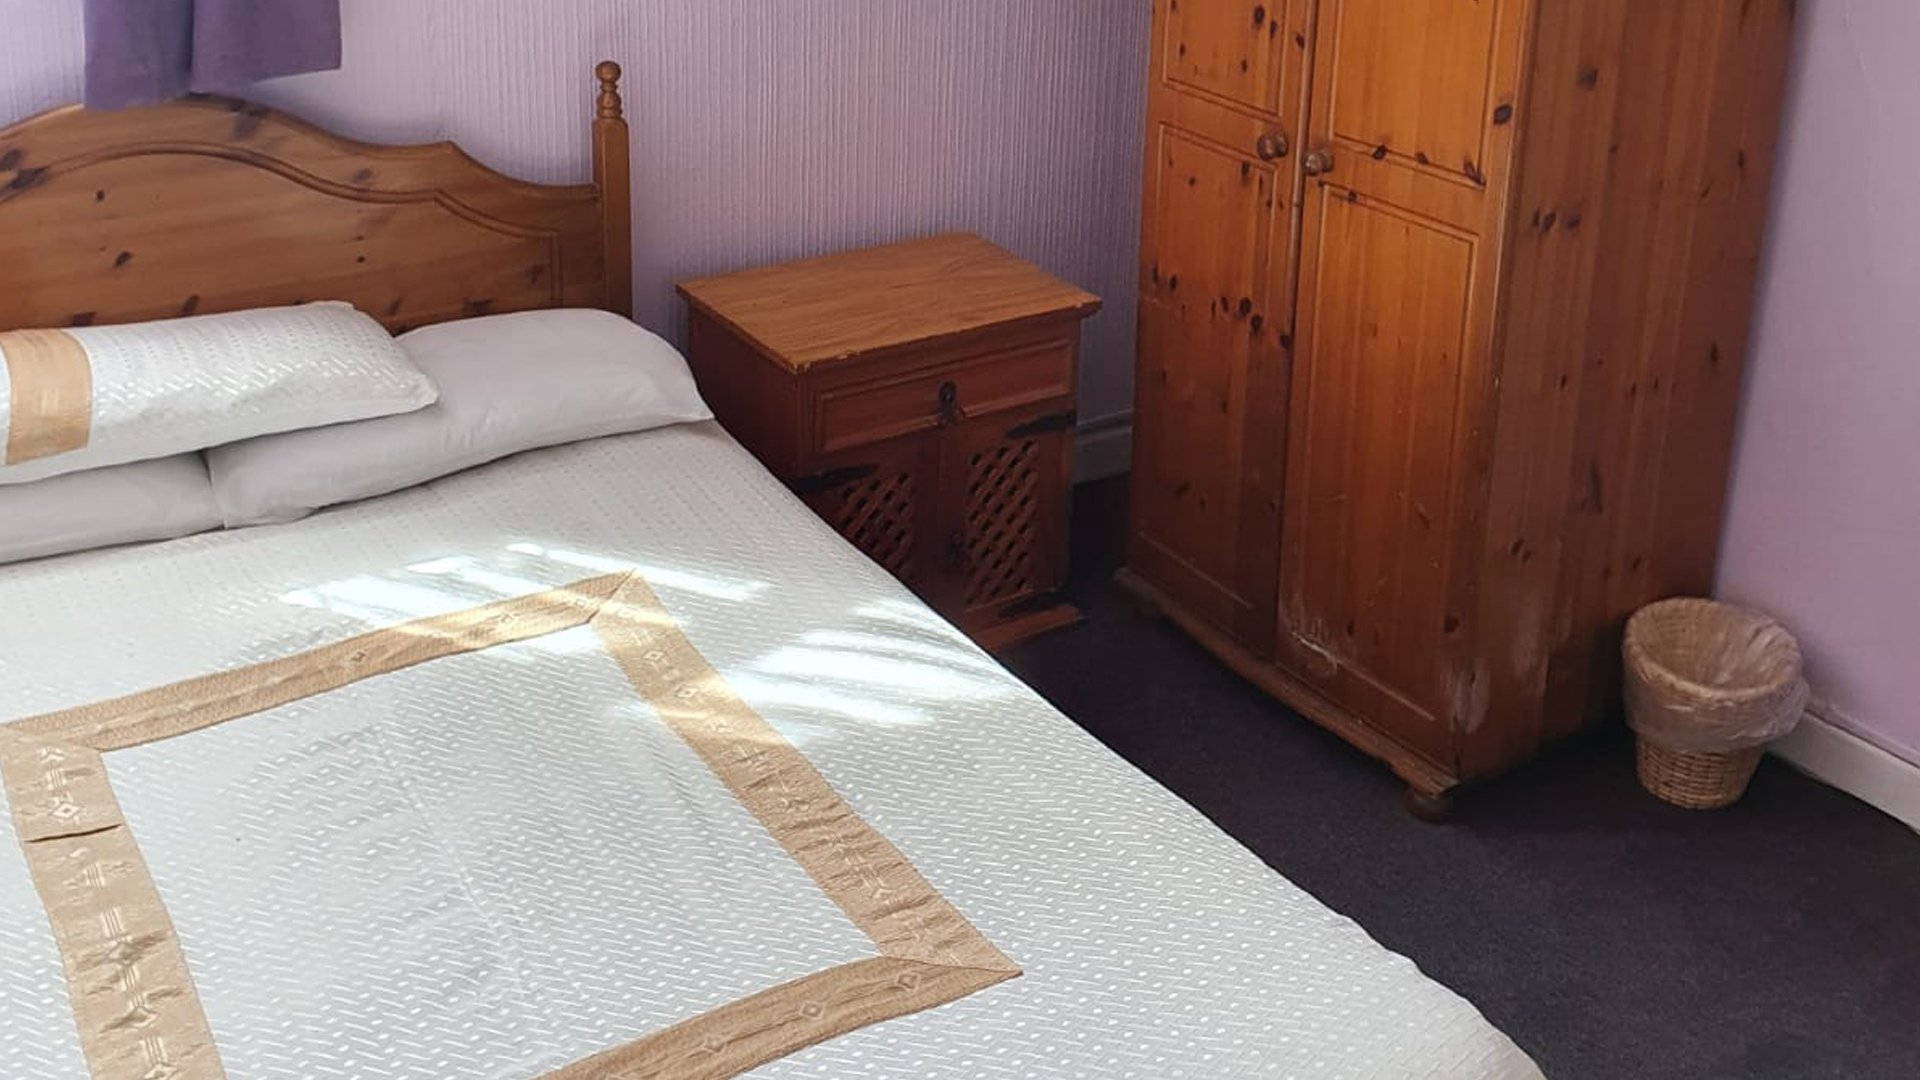 Station View Tavern - Double Room